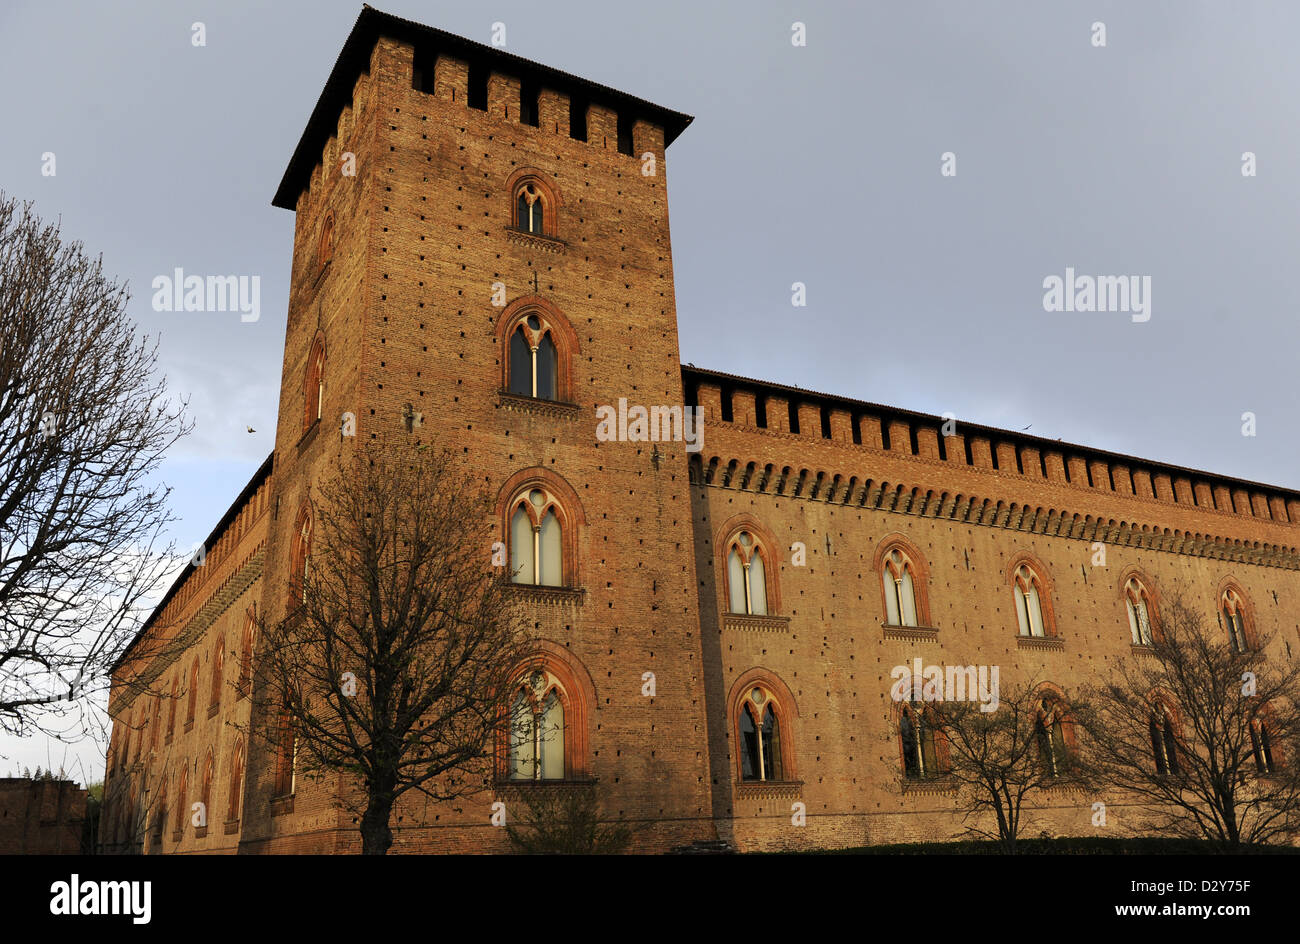 Italy. Pavia. The Castle of Visconti. Built between 1360-1366 by Galeazzo II Visconti (1320-1378). Is now the Civic - Stock Image